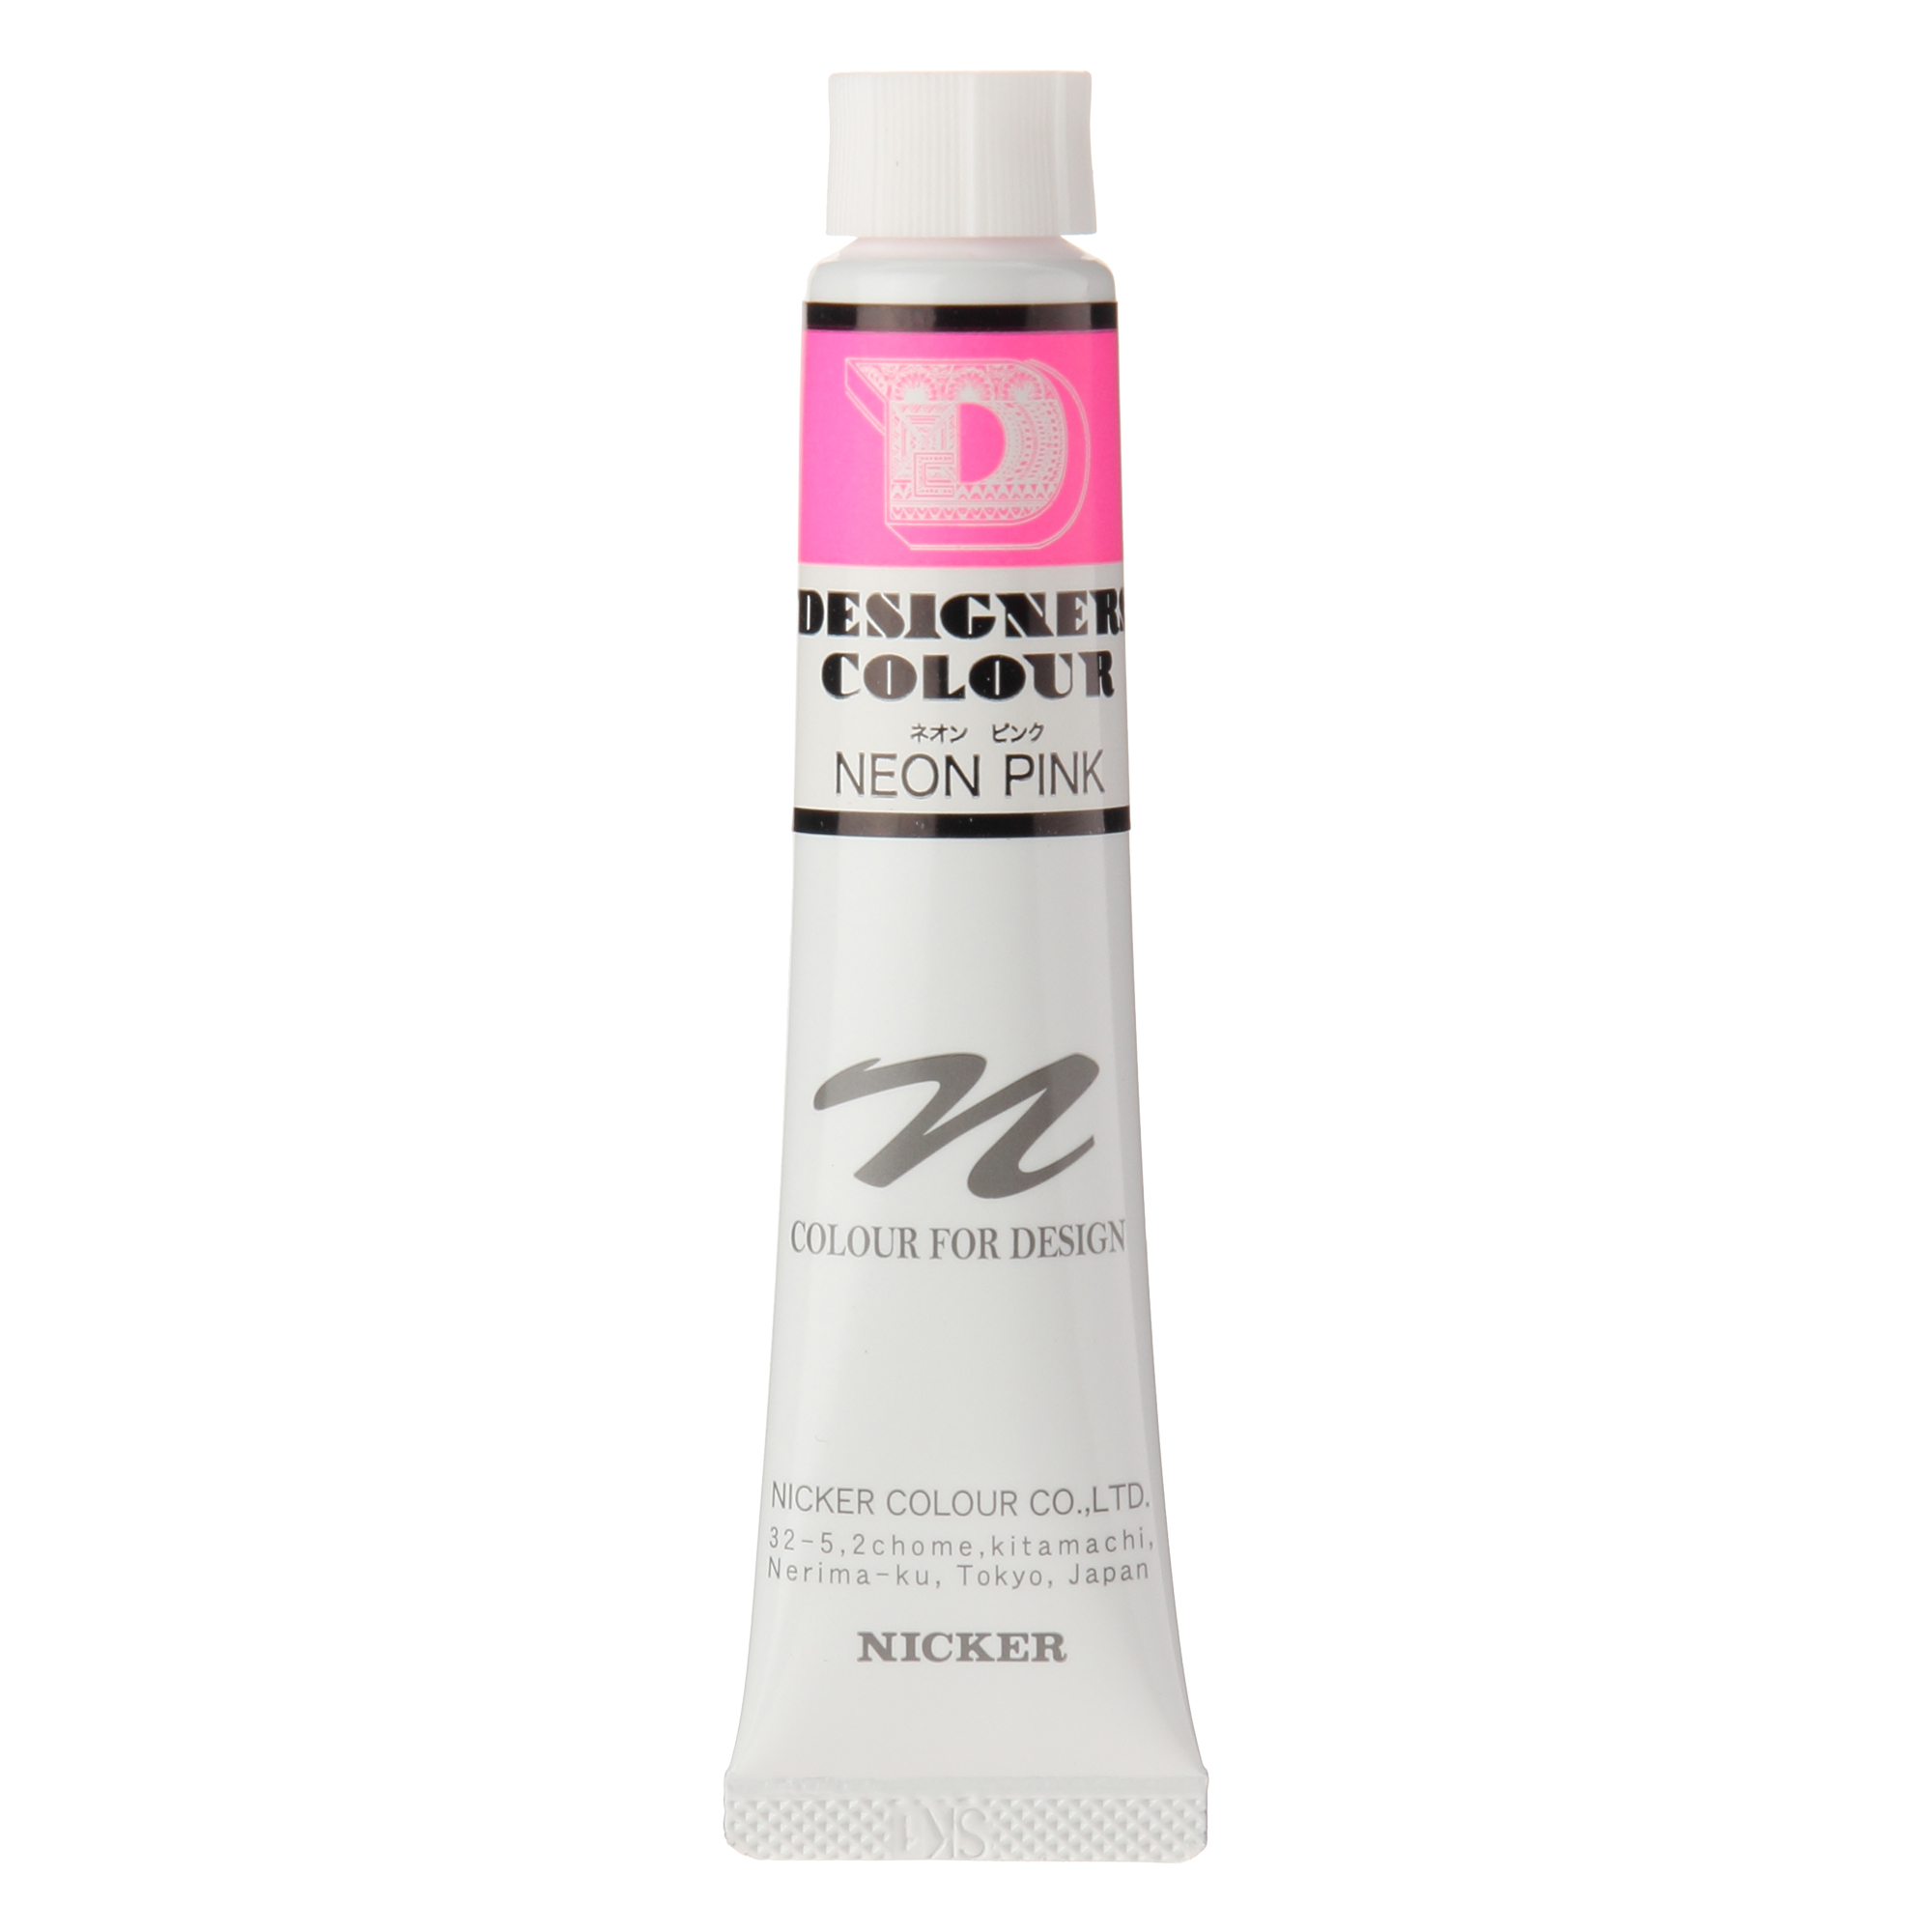 DESIGNERS COLOUR 20ml 576 NEON PINK